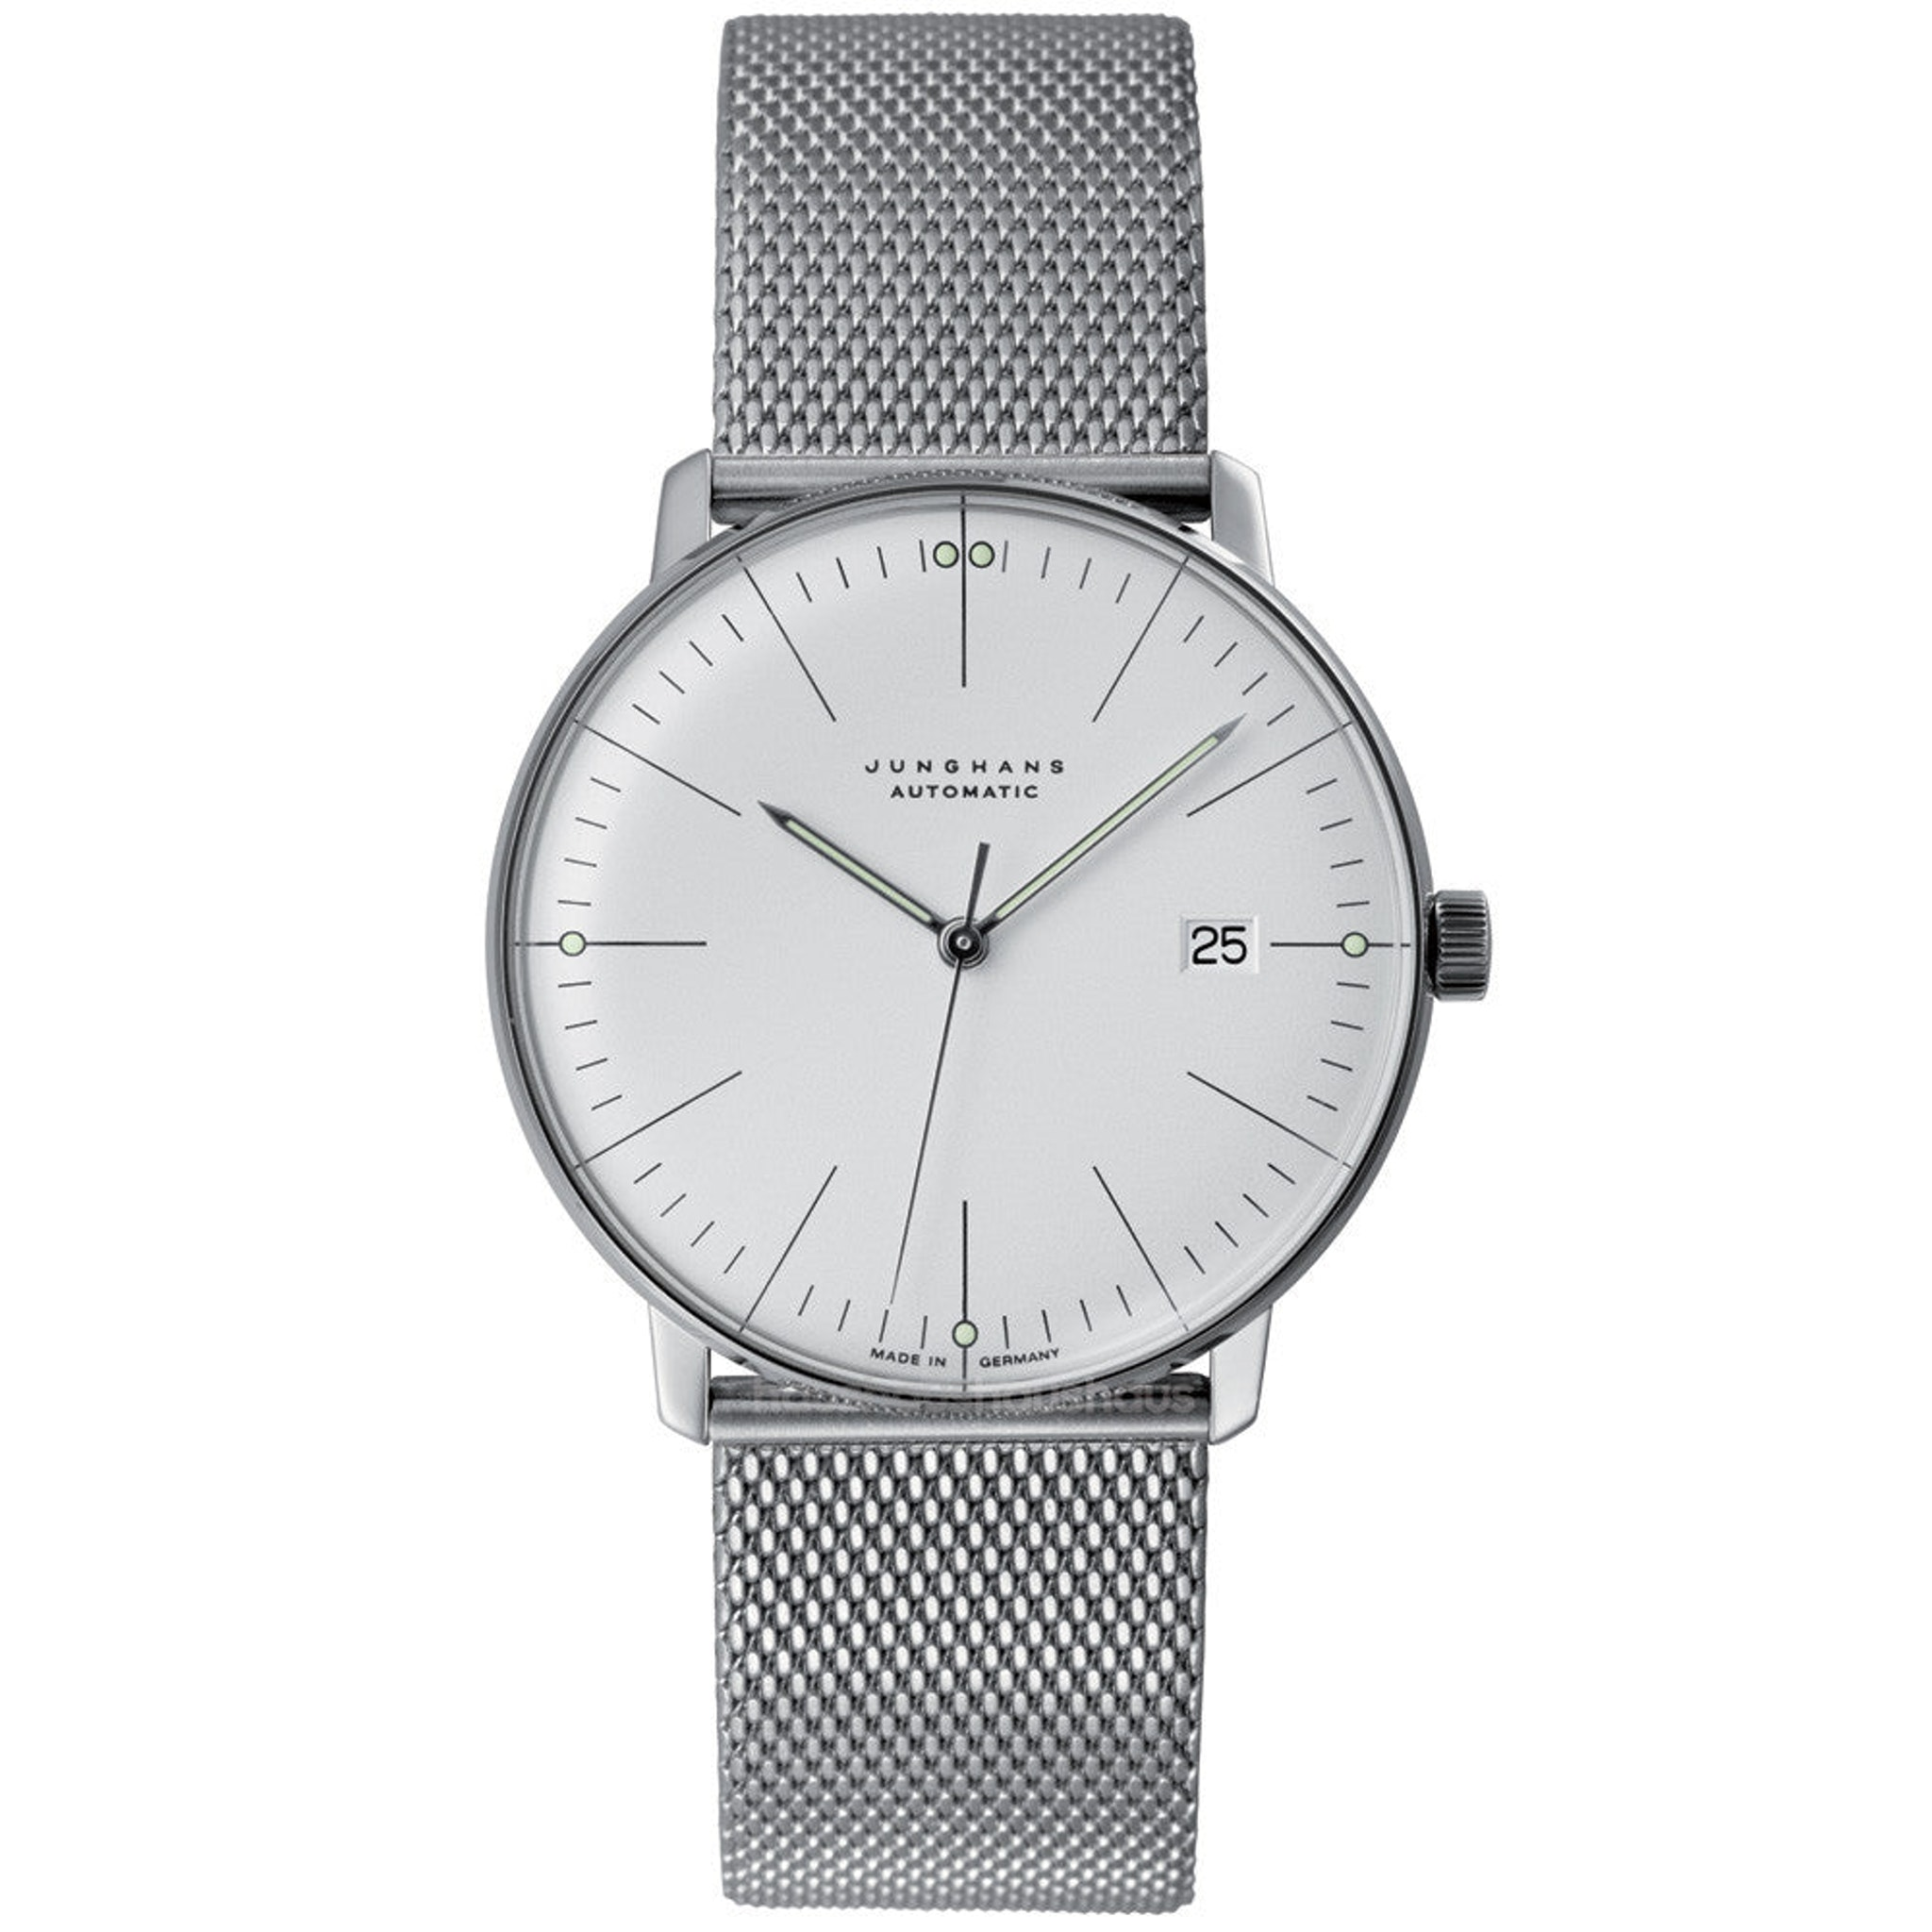 Max Bill 027/4002.44 Automatic watch by Junghans